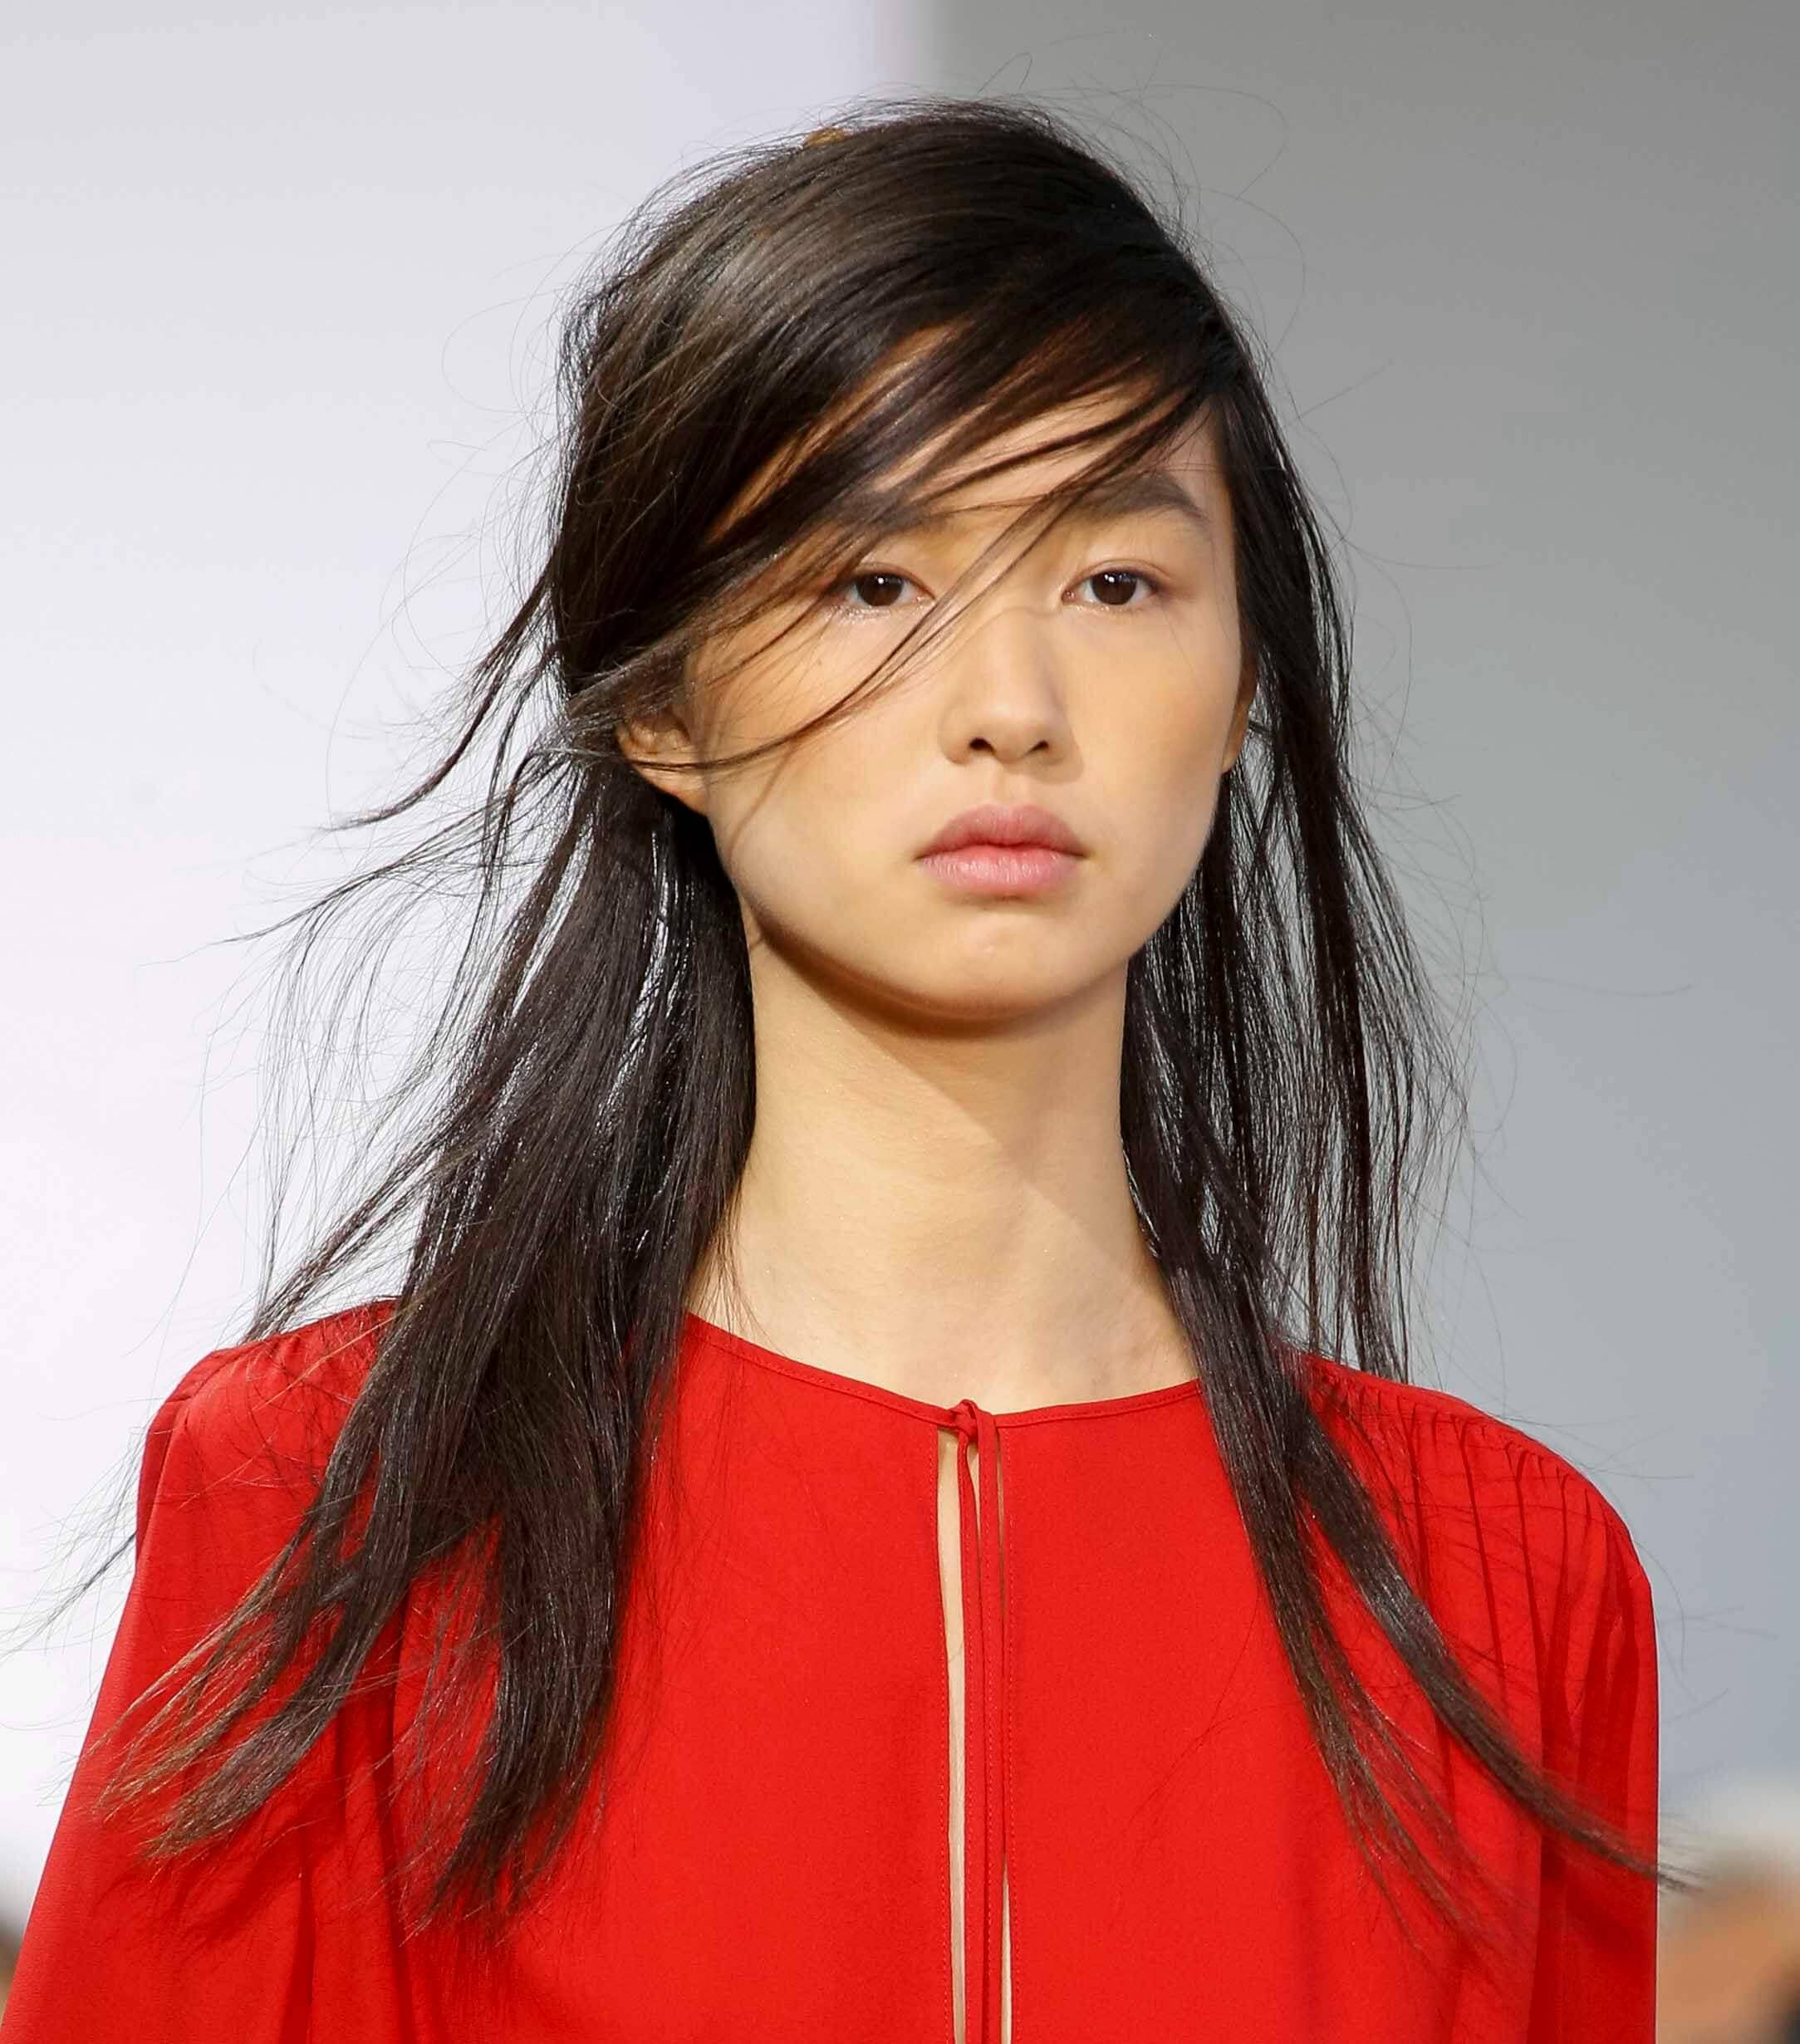 Cool Cute Bangs For Every Face Shape Finding Your Fringe Match Short Hairstyles Gunalazisus